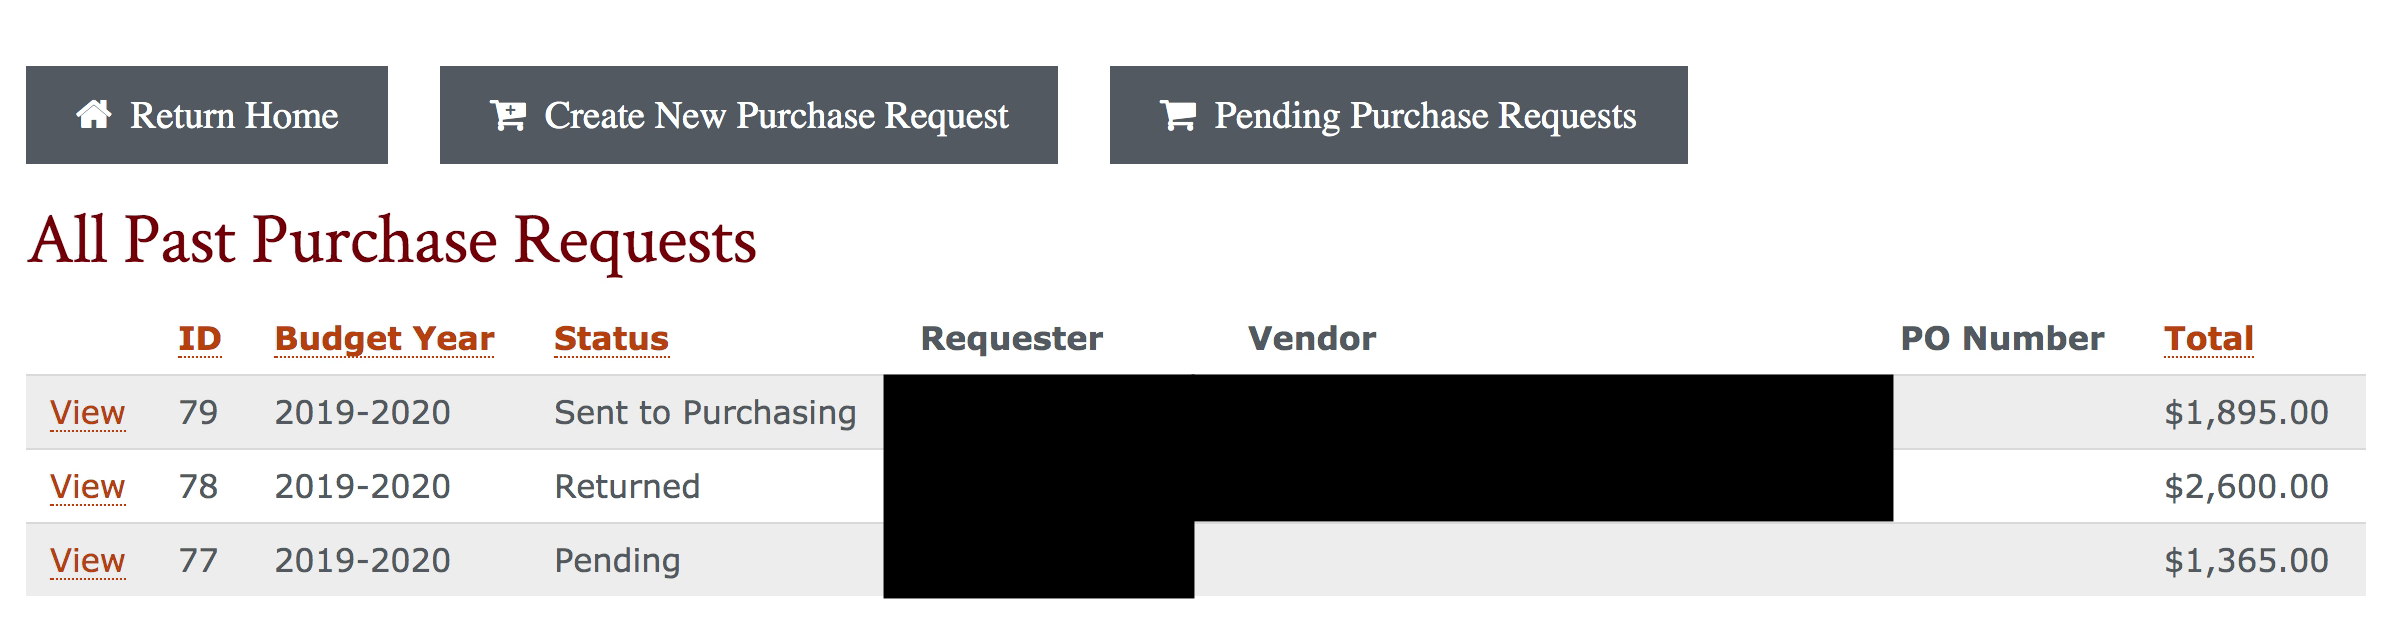 example of what all past purchase request look like in system